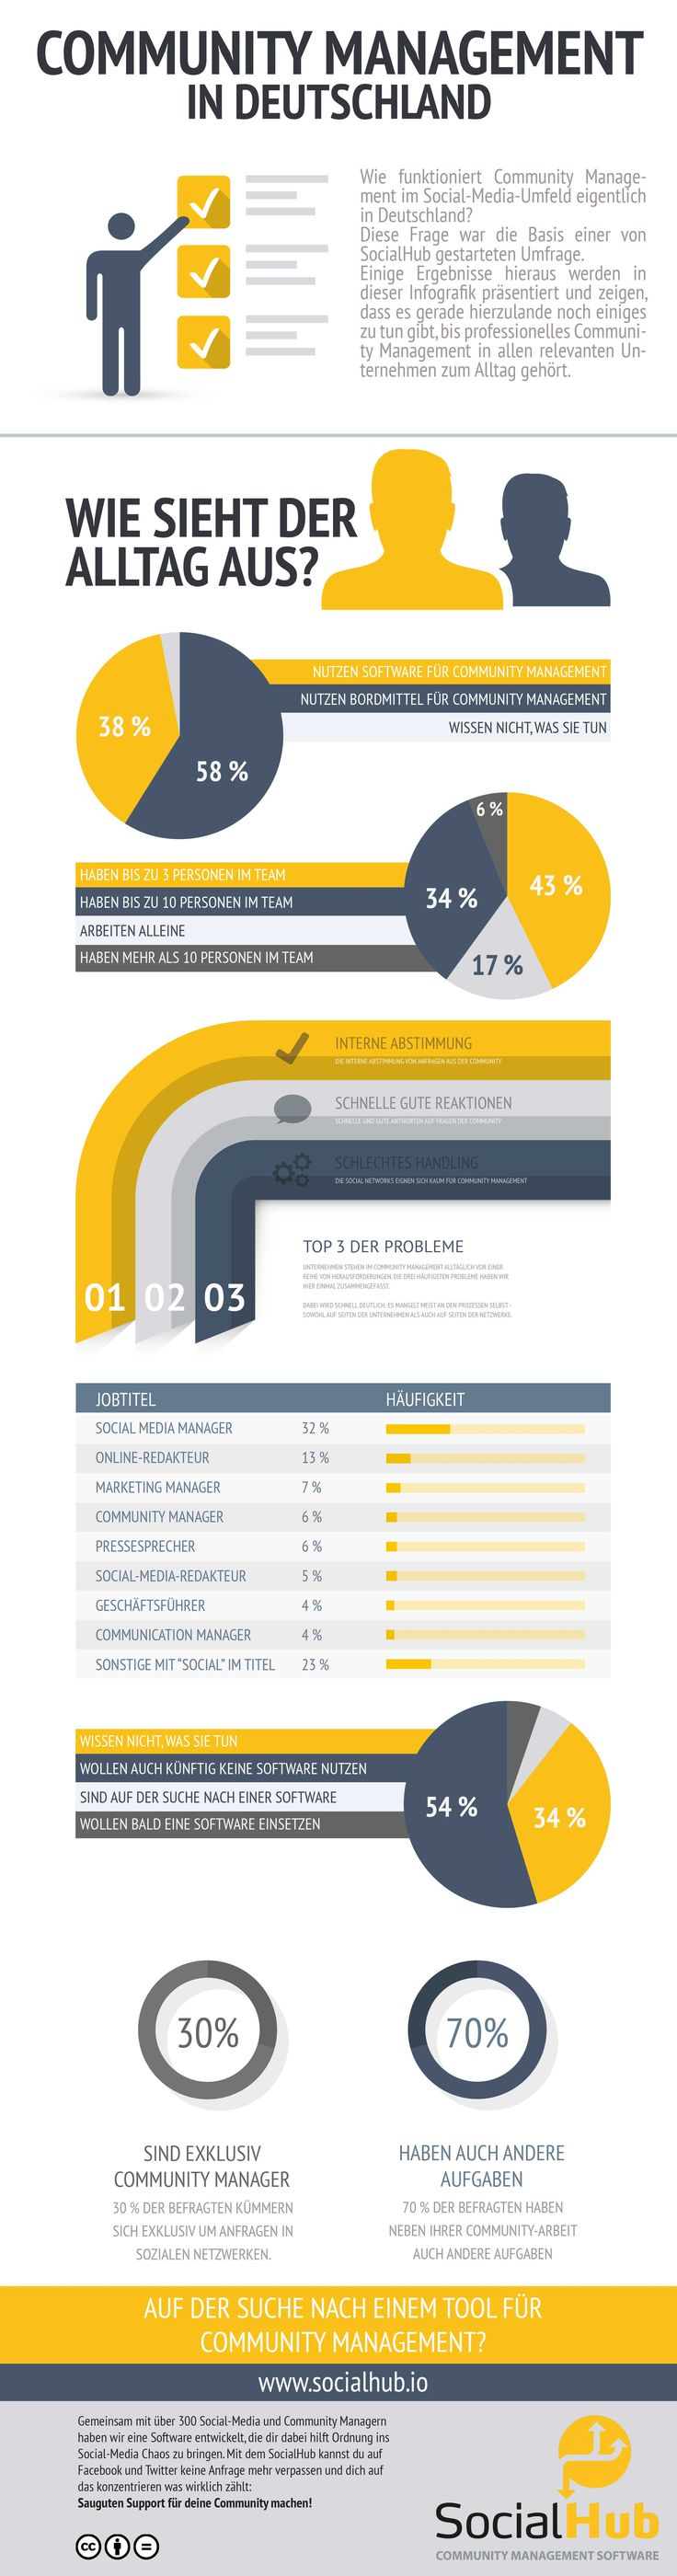 Infografik: Community Management in Deutschland - @SocialHub | Online Marketing Blog #SocialMedia #CommunityManagement